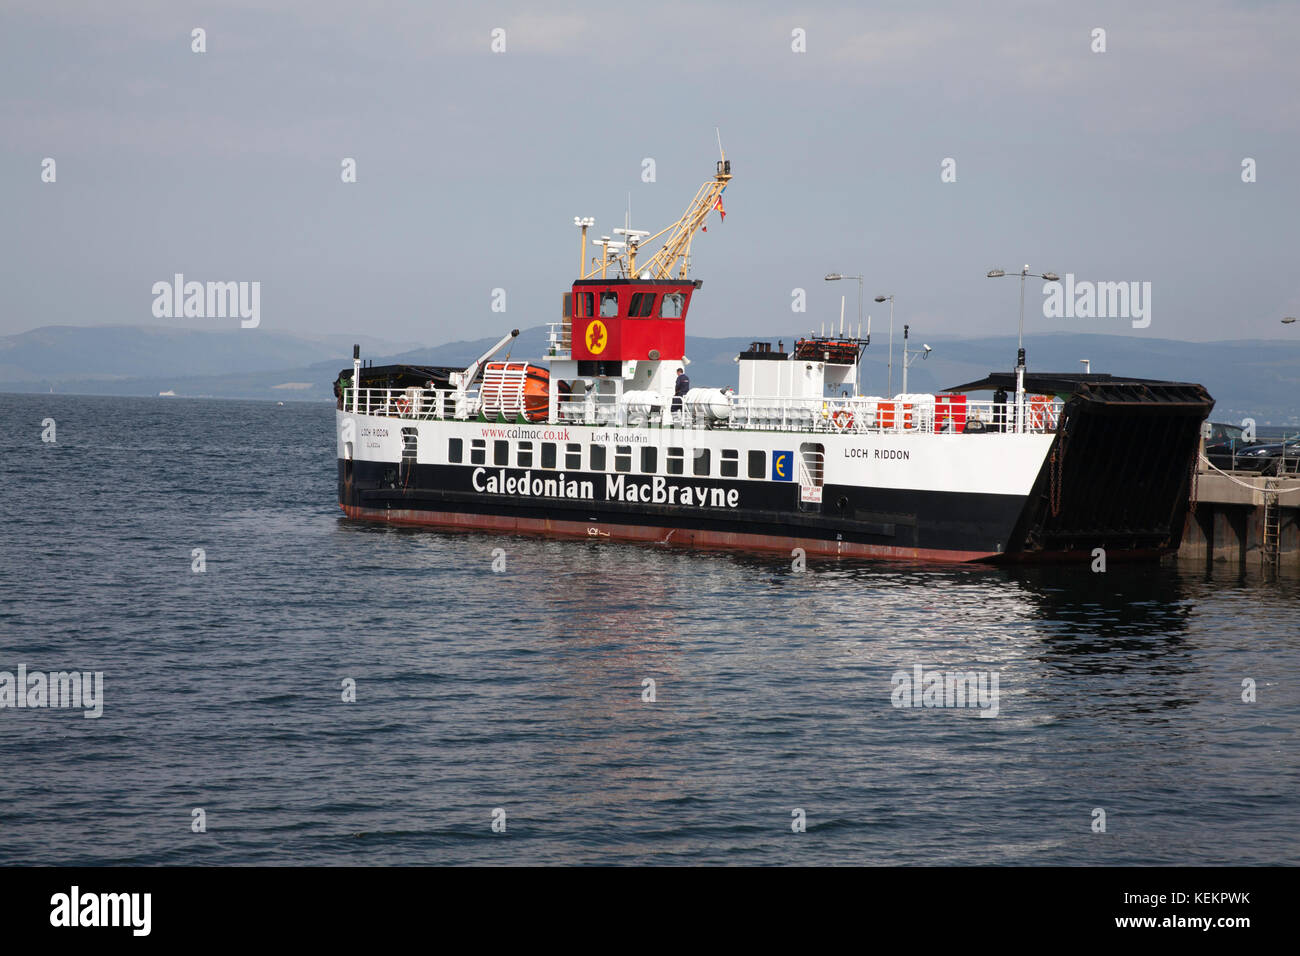 The Caledonian Macbrayne ferry Loch Riddon sailing between the town of  Largs and the Island of Cumbrae North Ayshire - Stock Image